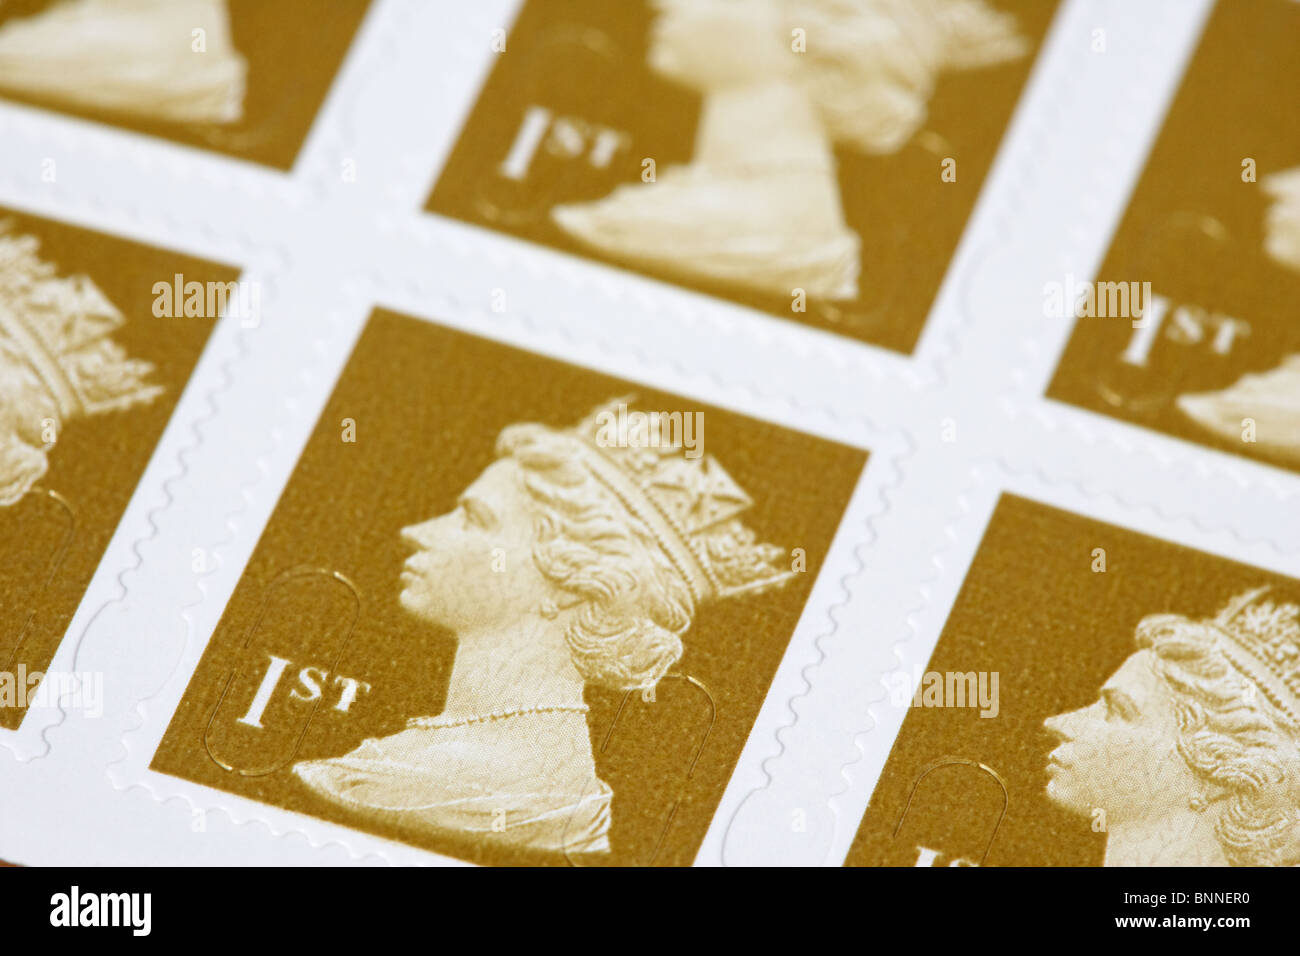 pack of pre-paid first class self adhesive royal mail stamps - Stock Image